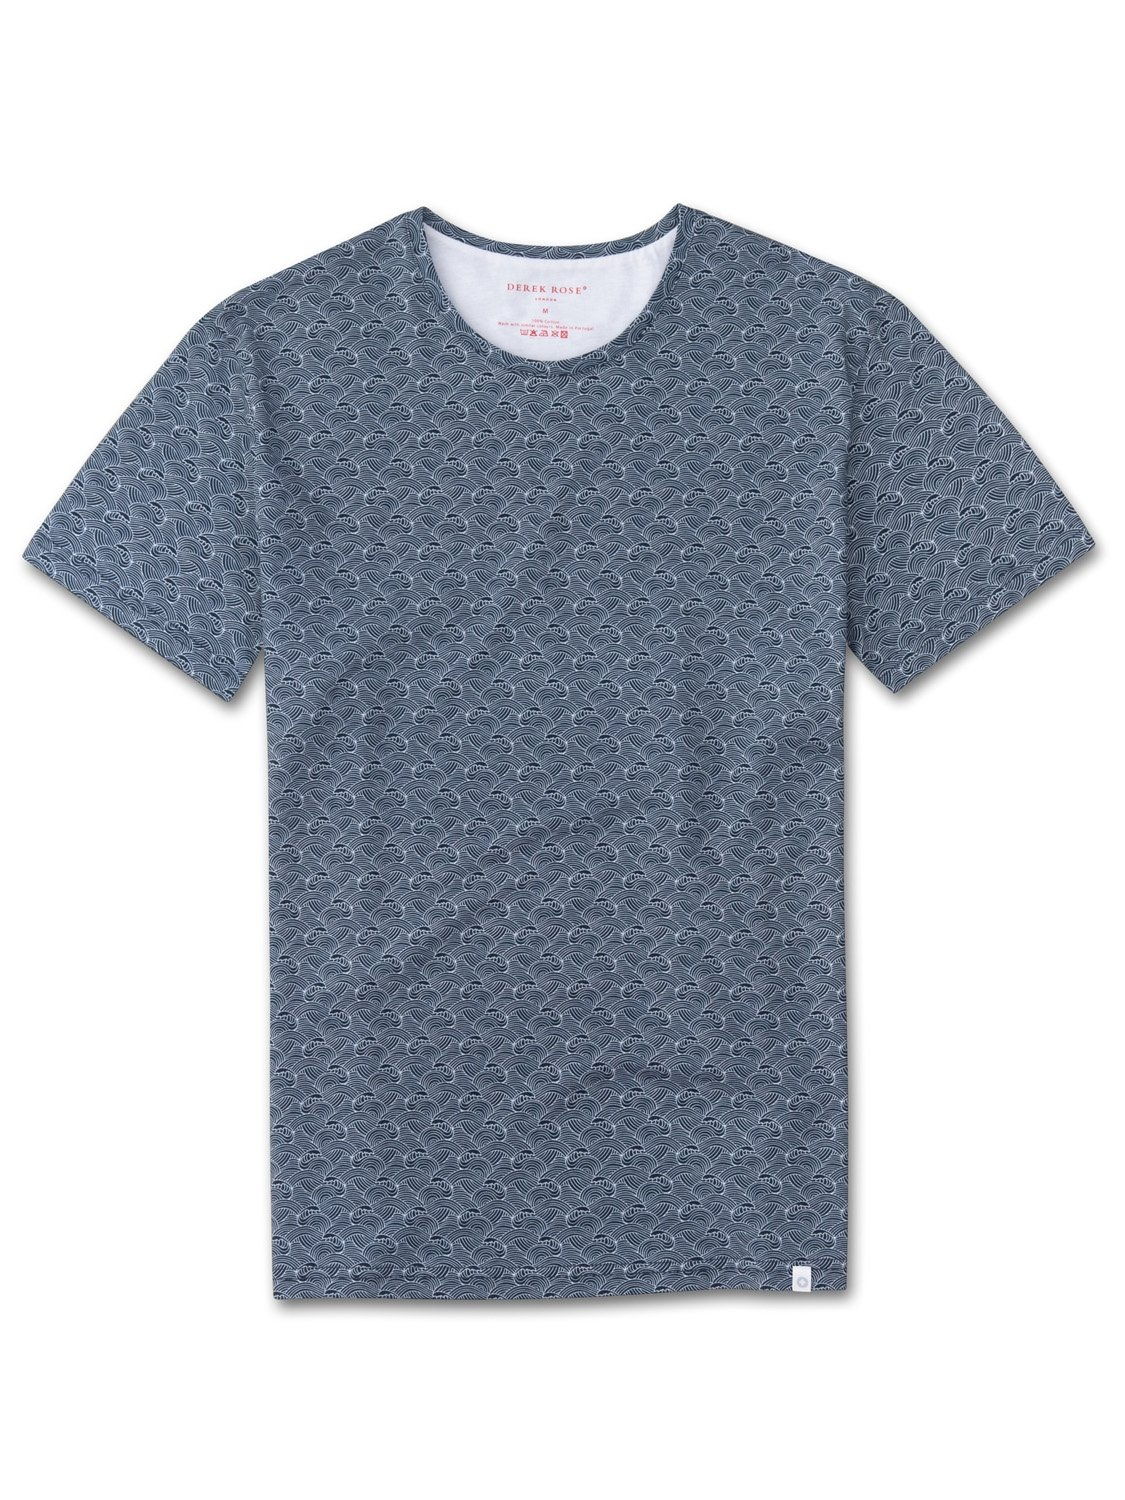 Men's Short Sleeve T-Shirt Henry 9 Carbon-Brushed Cotton Navy